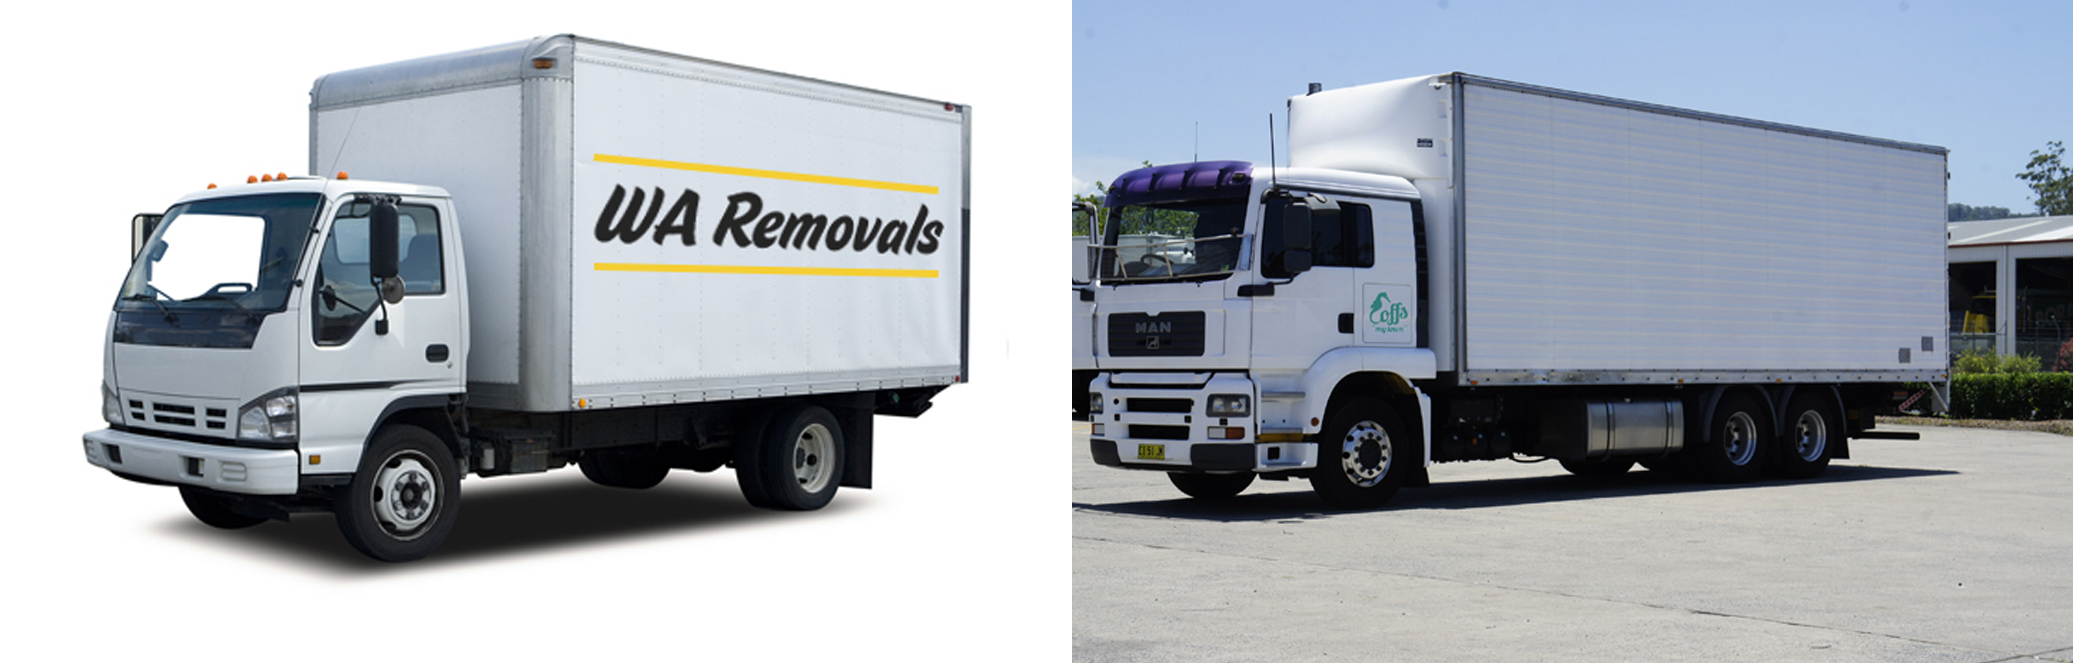 https://www.waremovals.com.au/wp-content/uploads/2017/09/wa.png